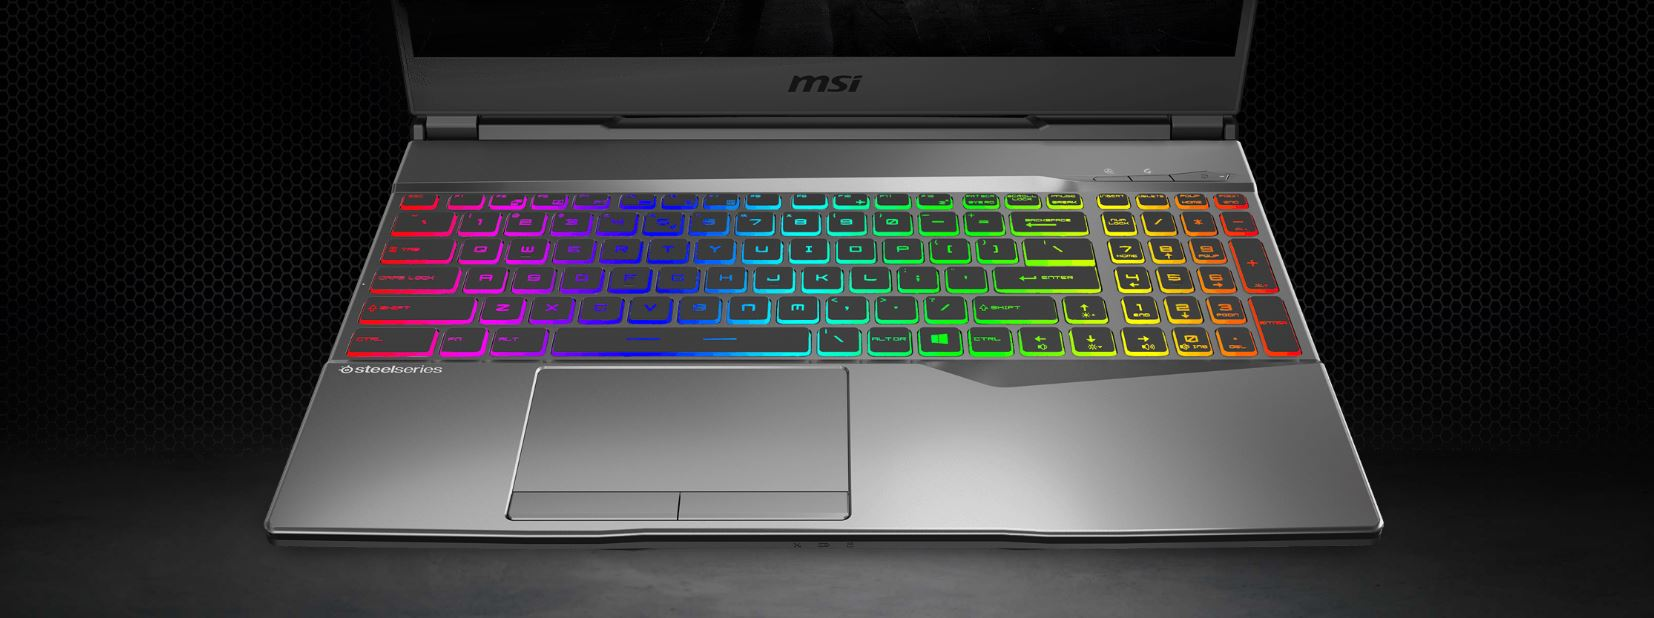 Backlit keyboard details